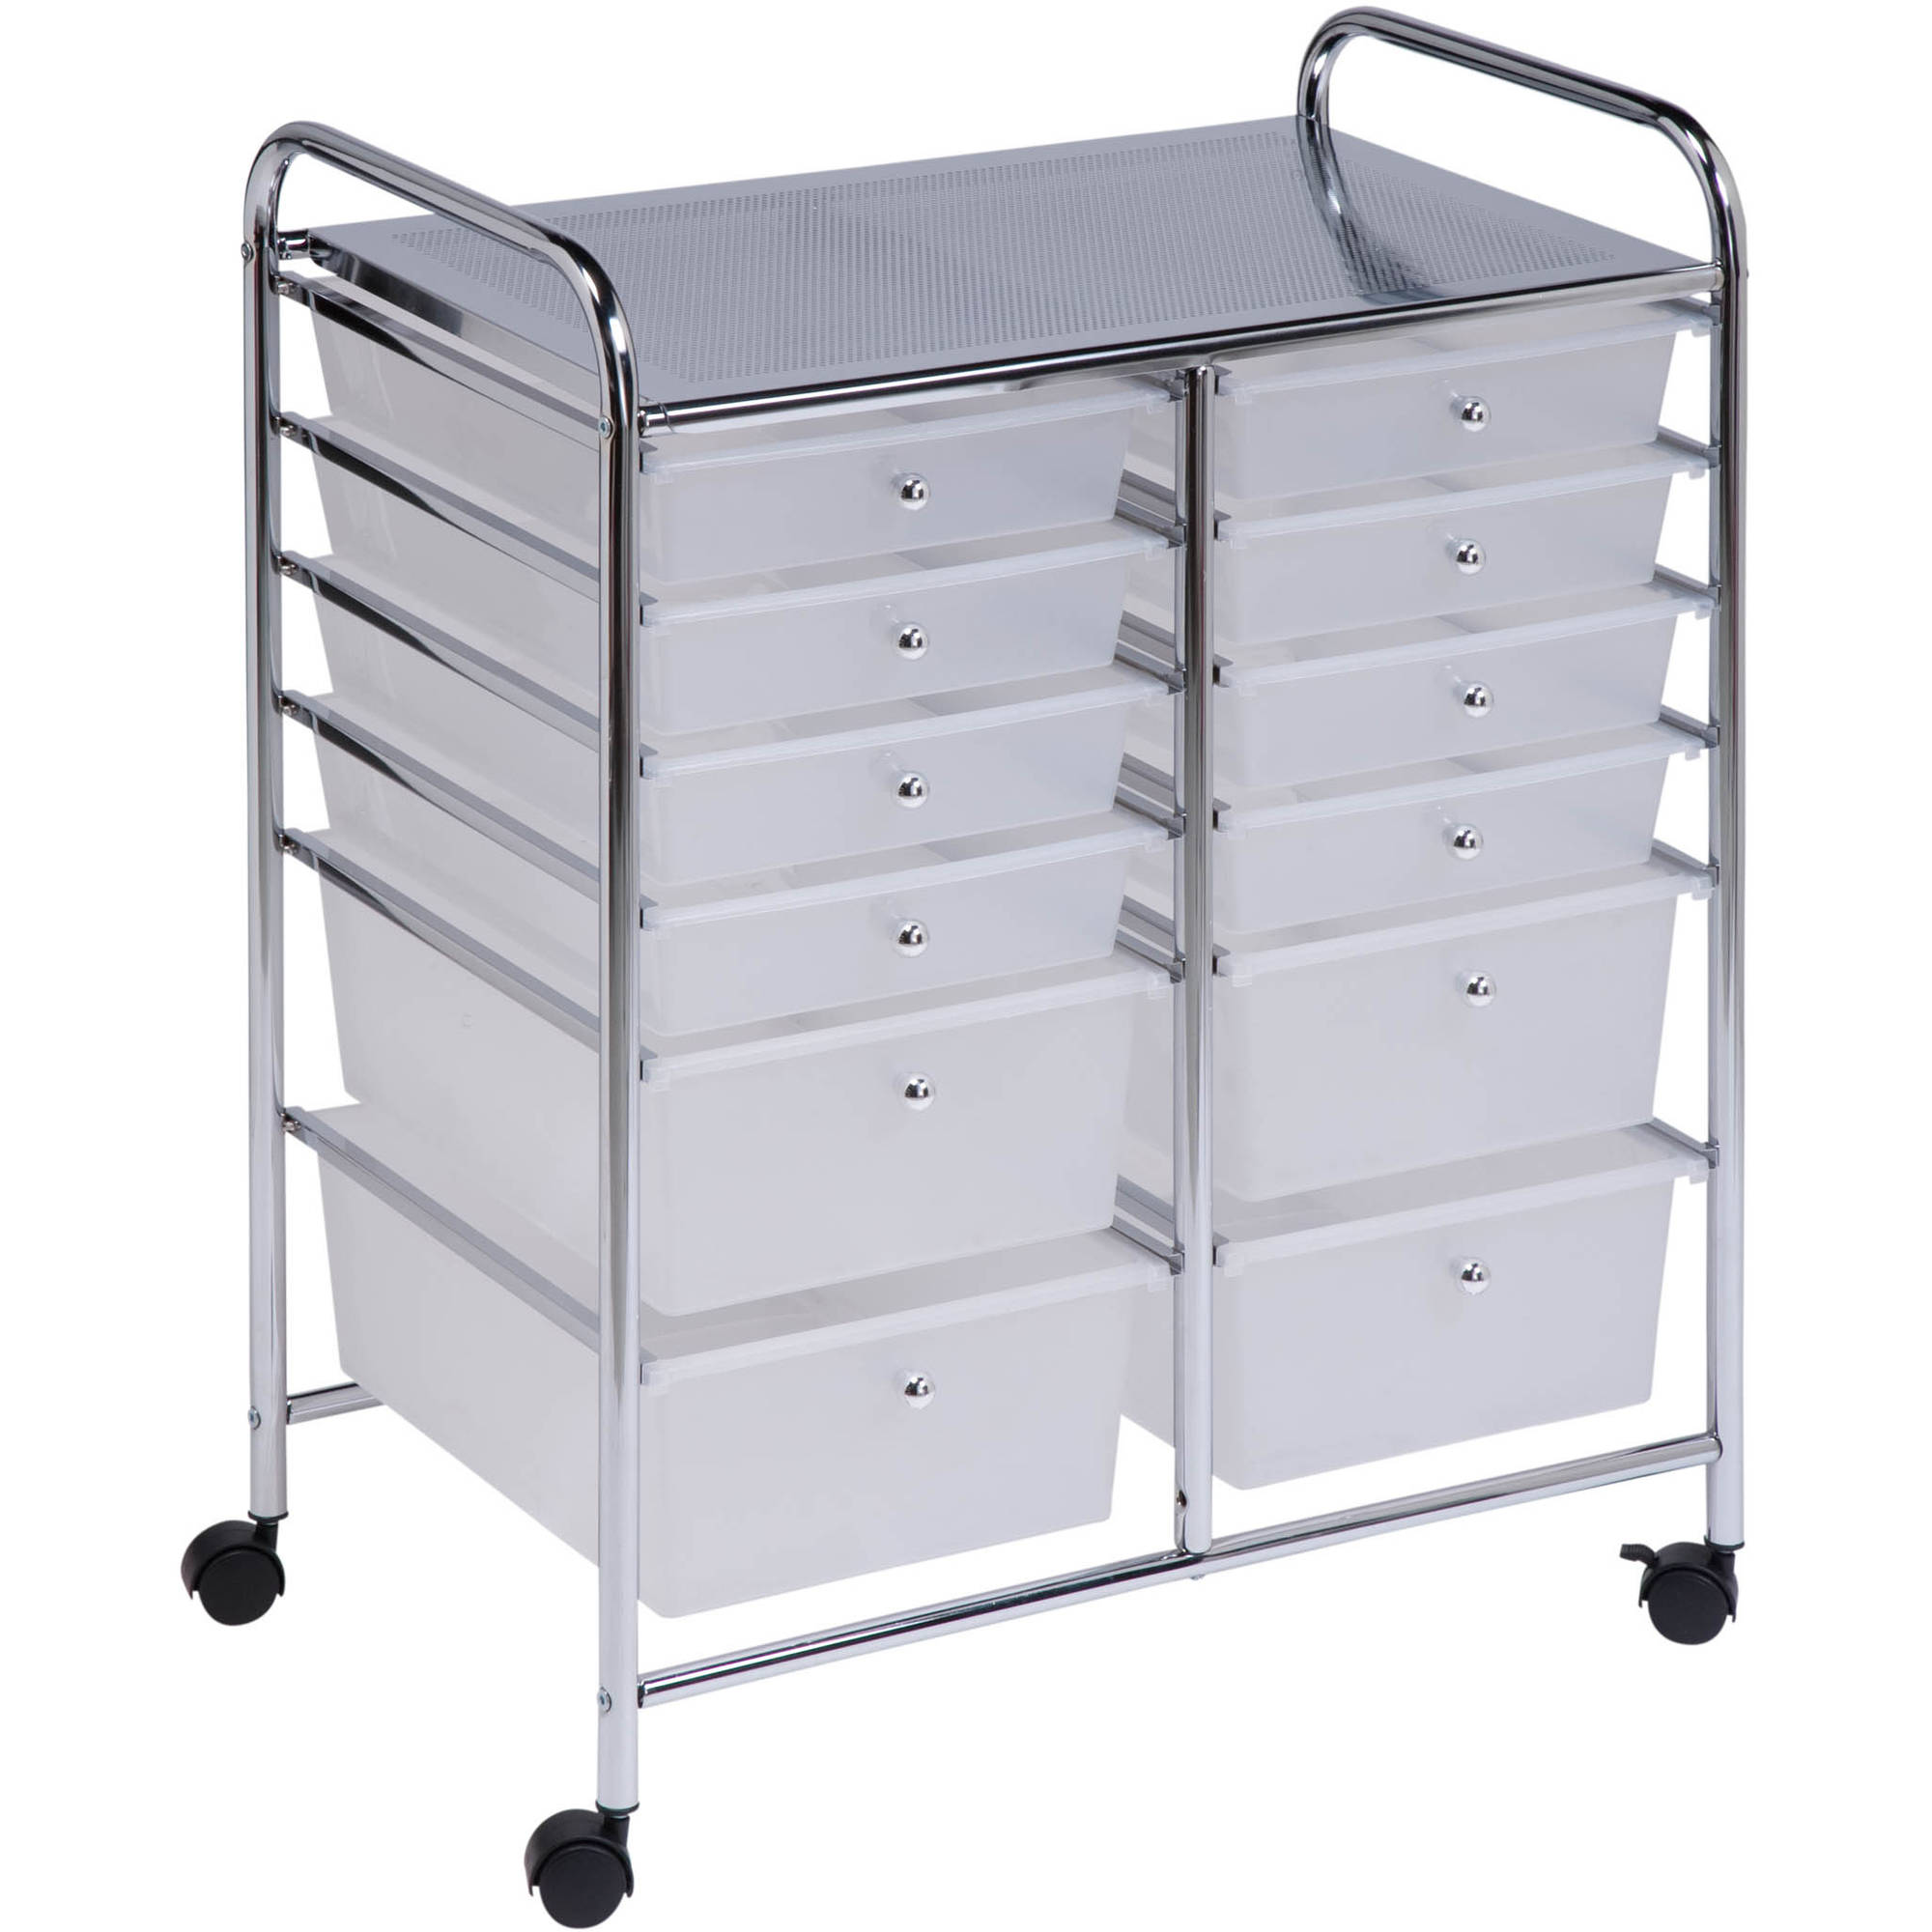 Image result for 12 drawer rolling cart